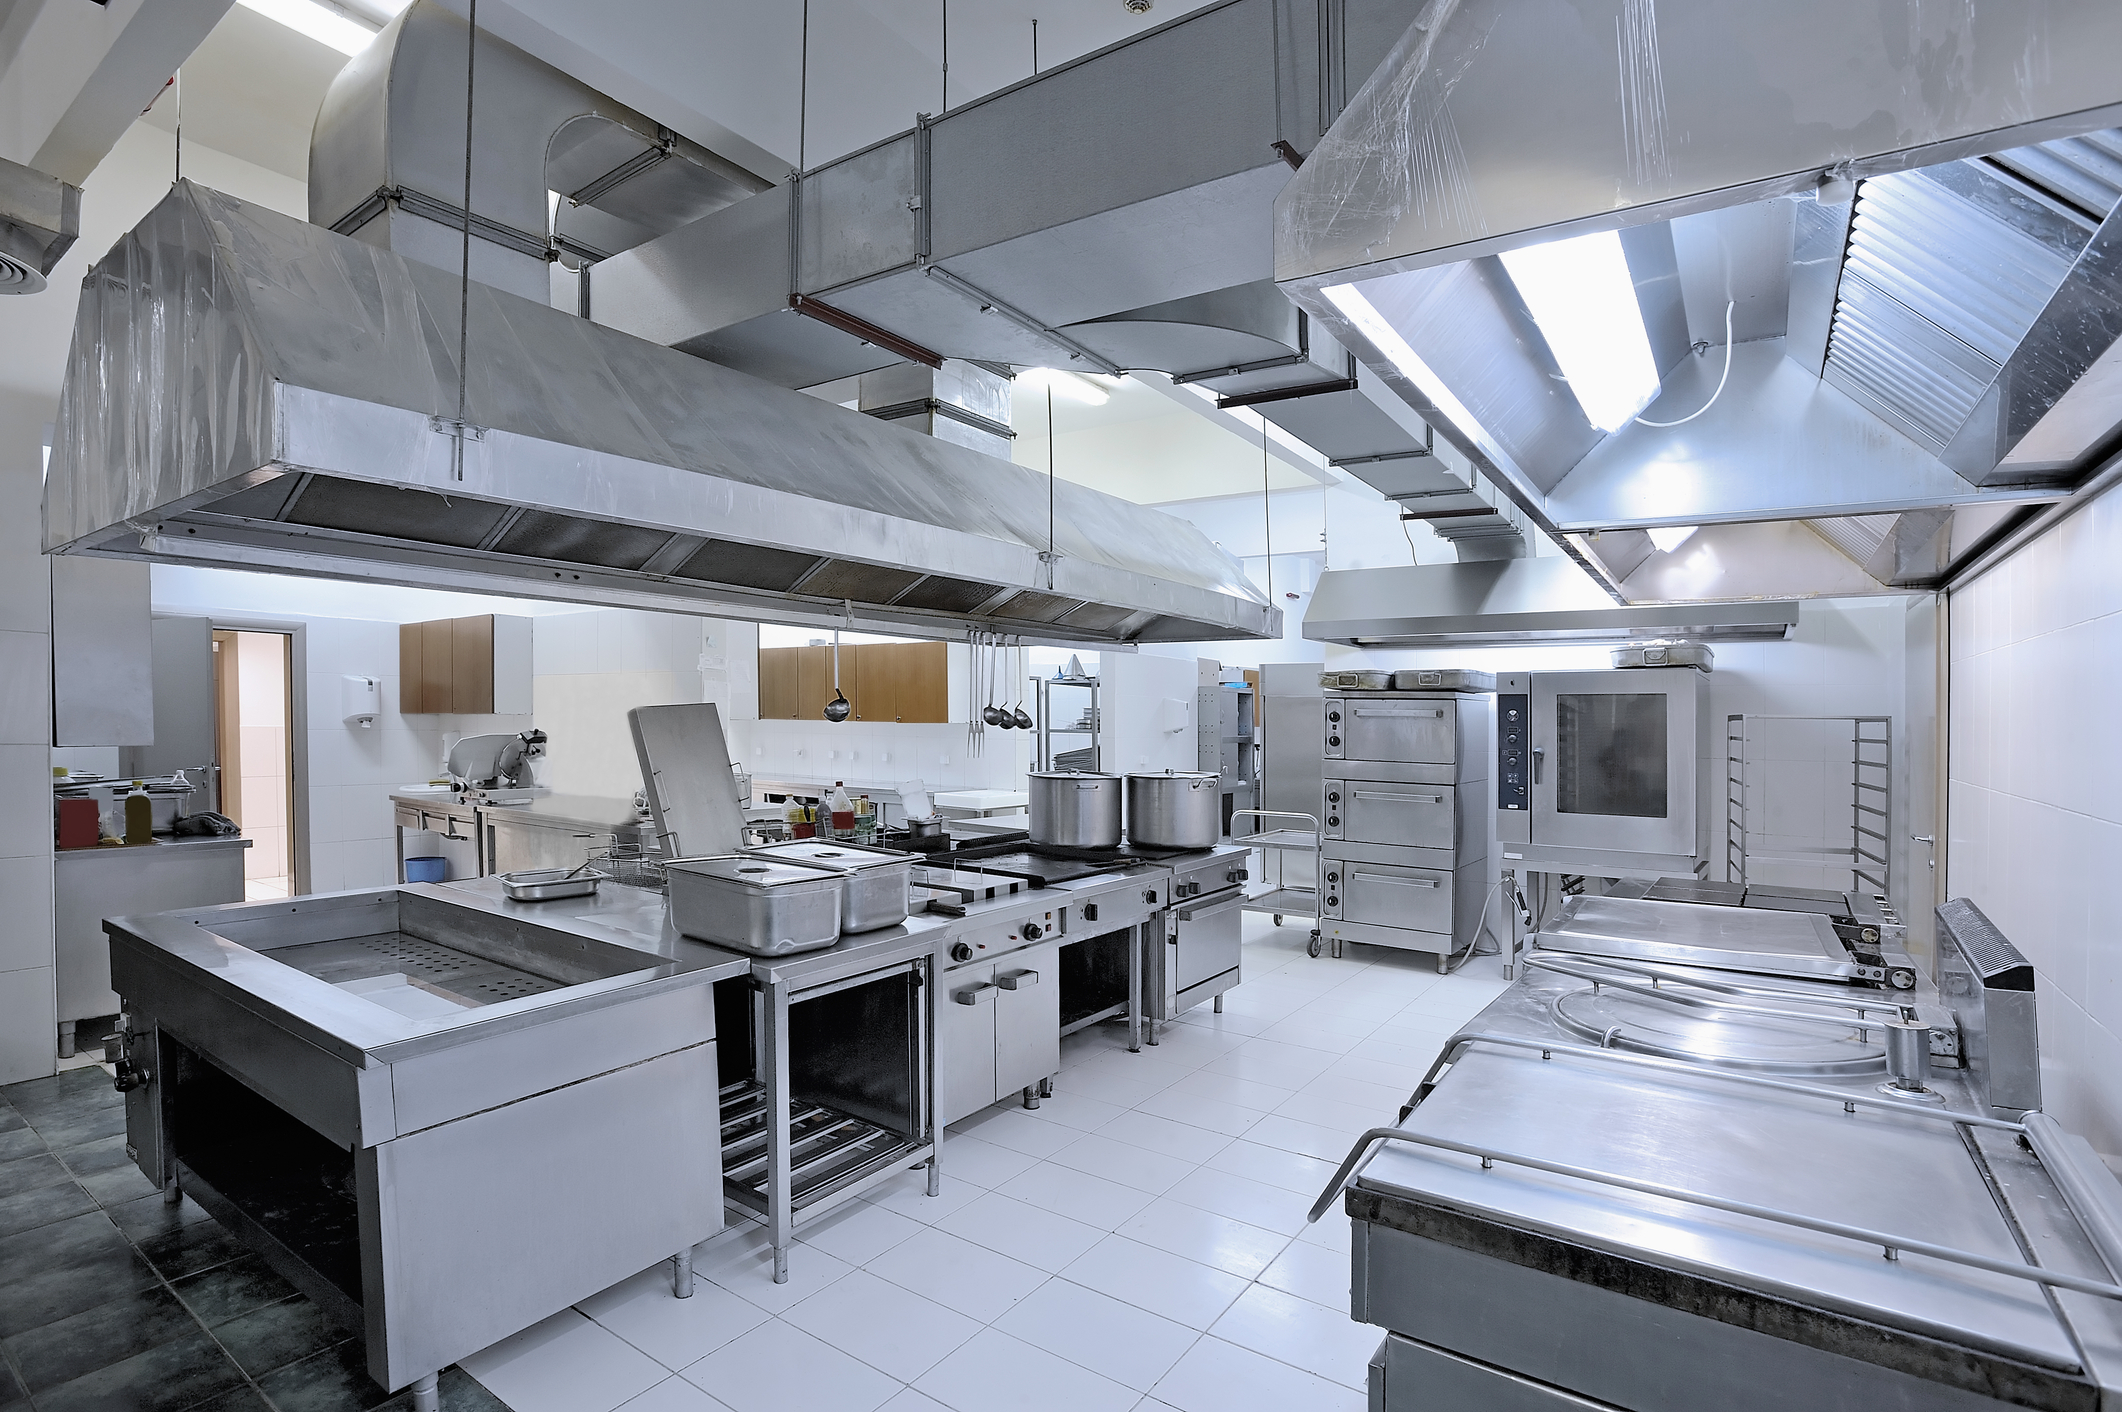 Commercial kitchen design best 5 important things you should know caterline - Commercial kitchen designer ...